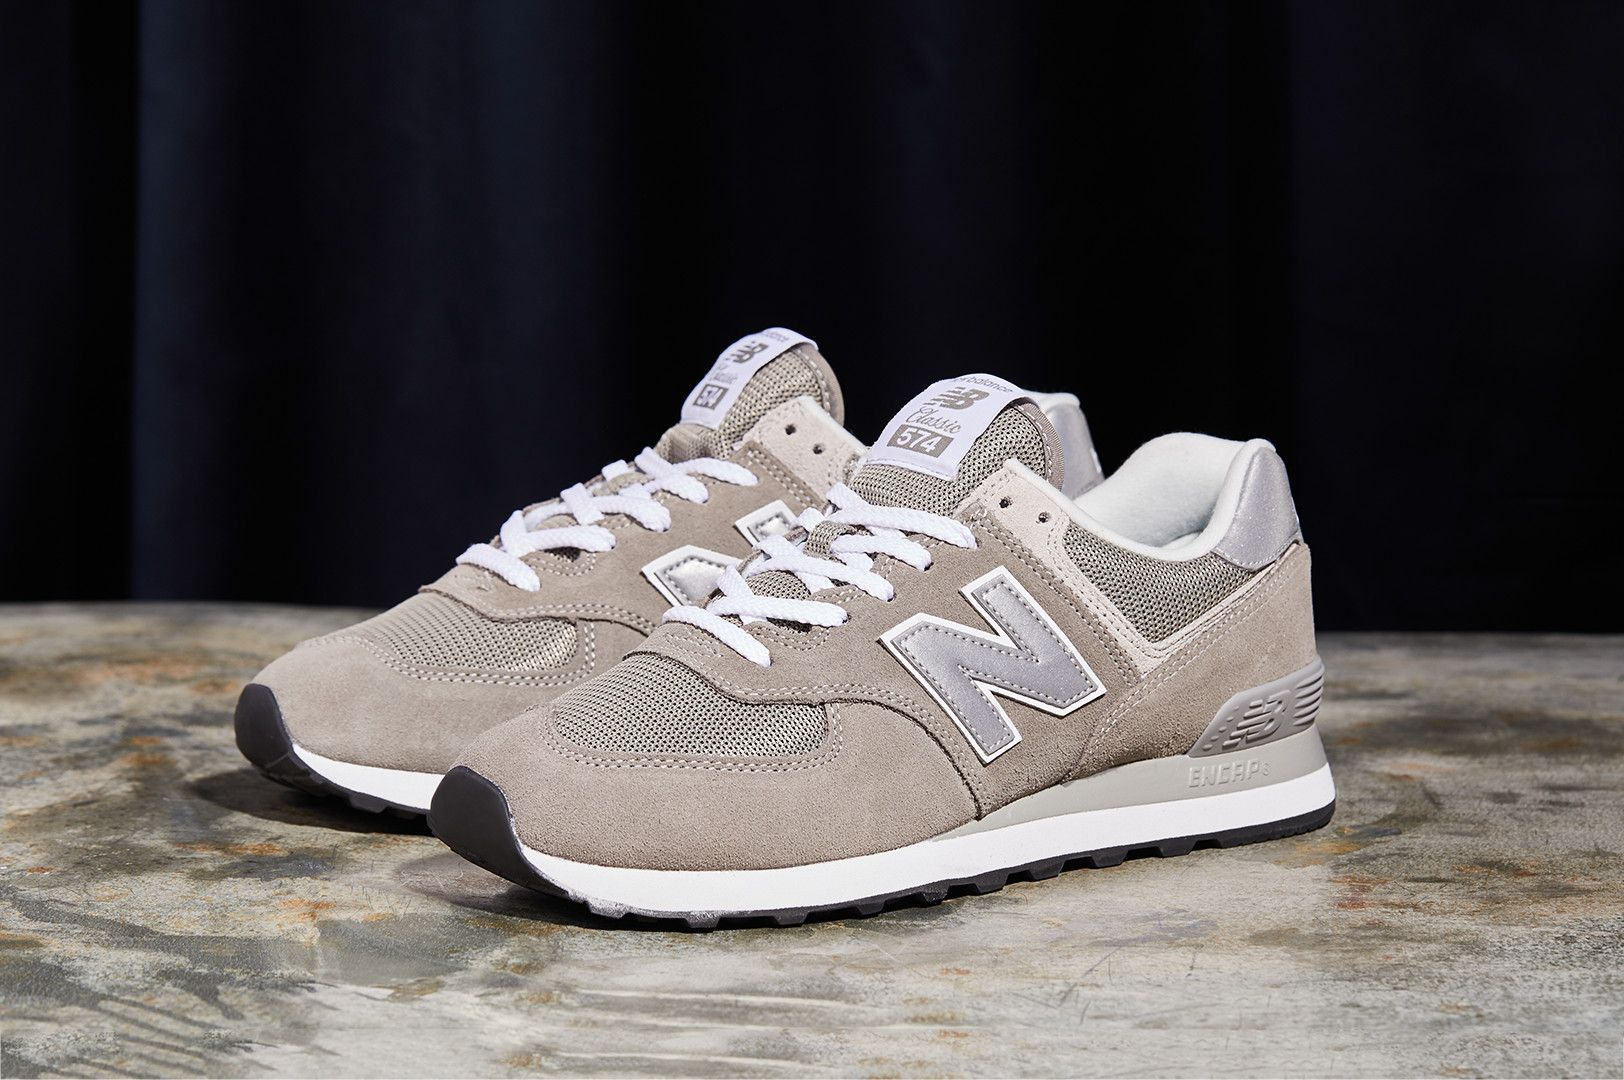 Sneaker That's Fashion The Sneakers Anti Balance New So 574 It's rBeoCdxW